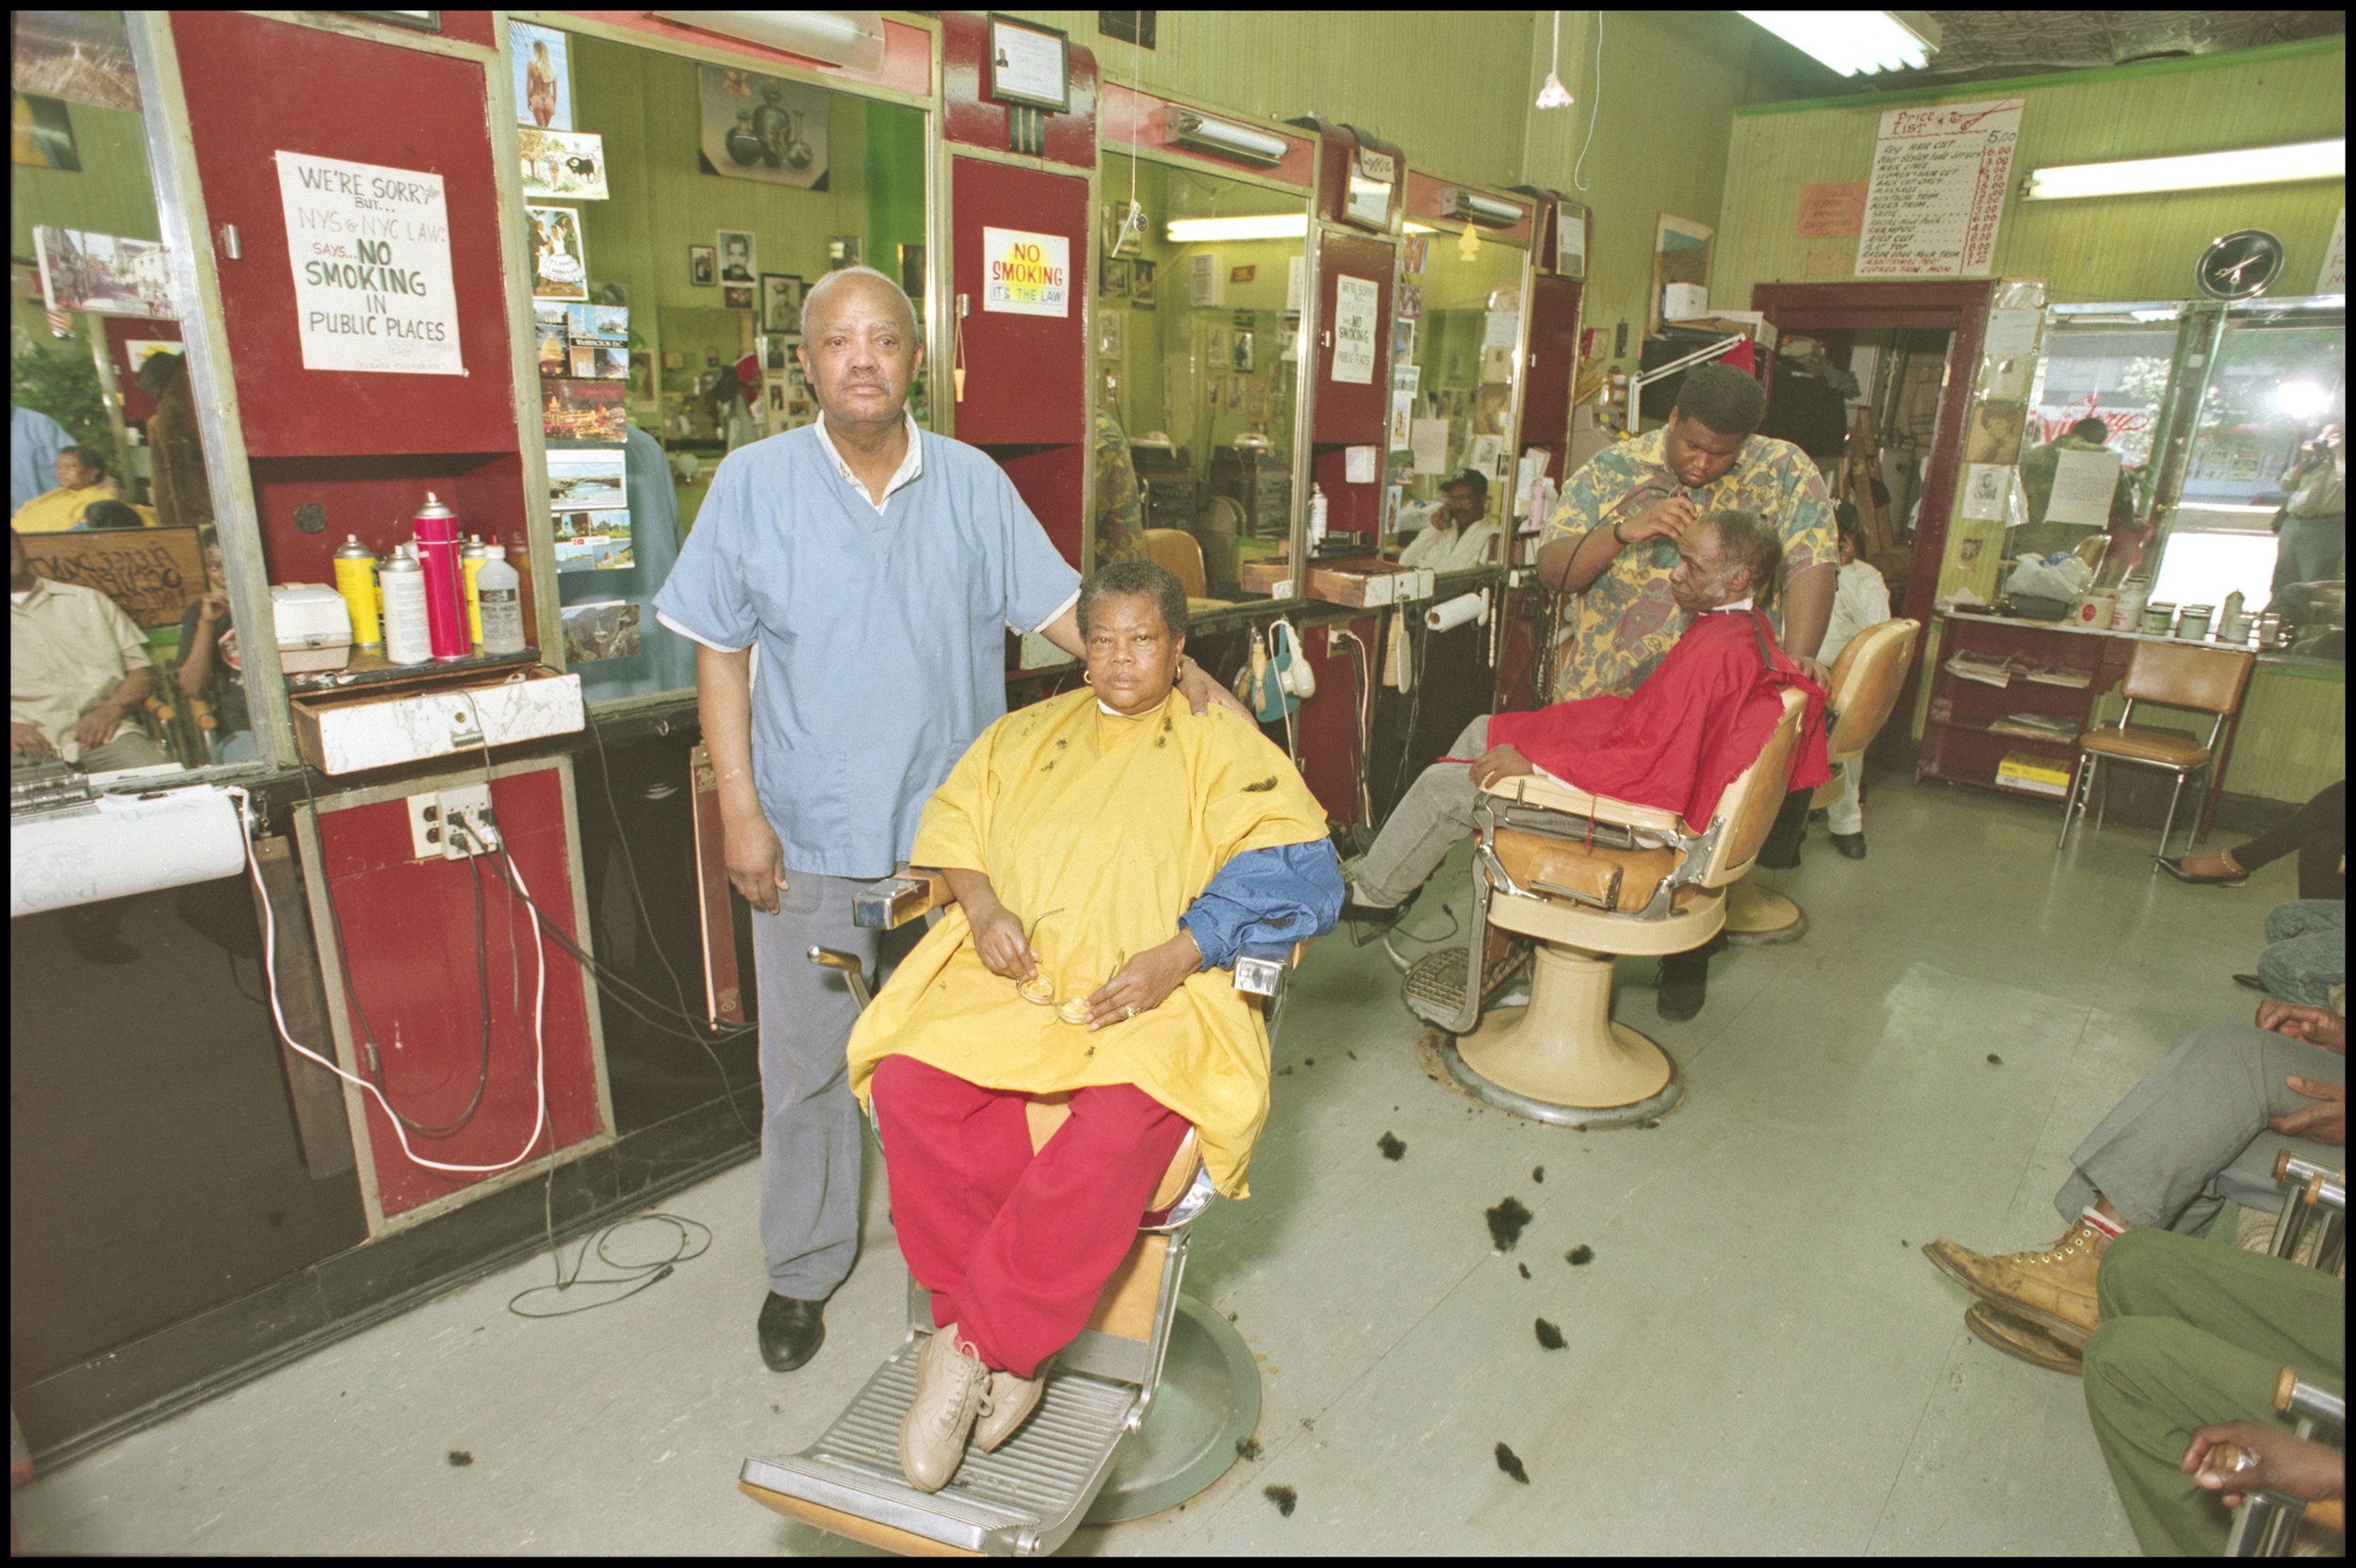 Barbershop, West 148th Street, June 1994. Photograph by Larry Racioppo.